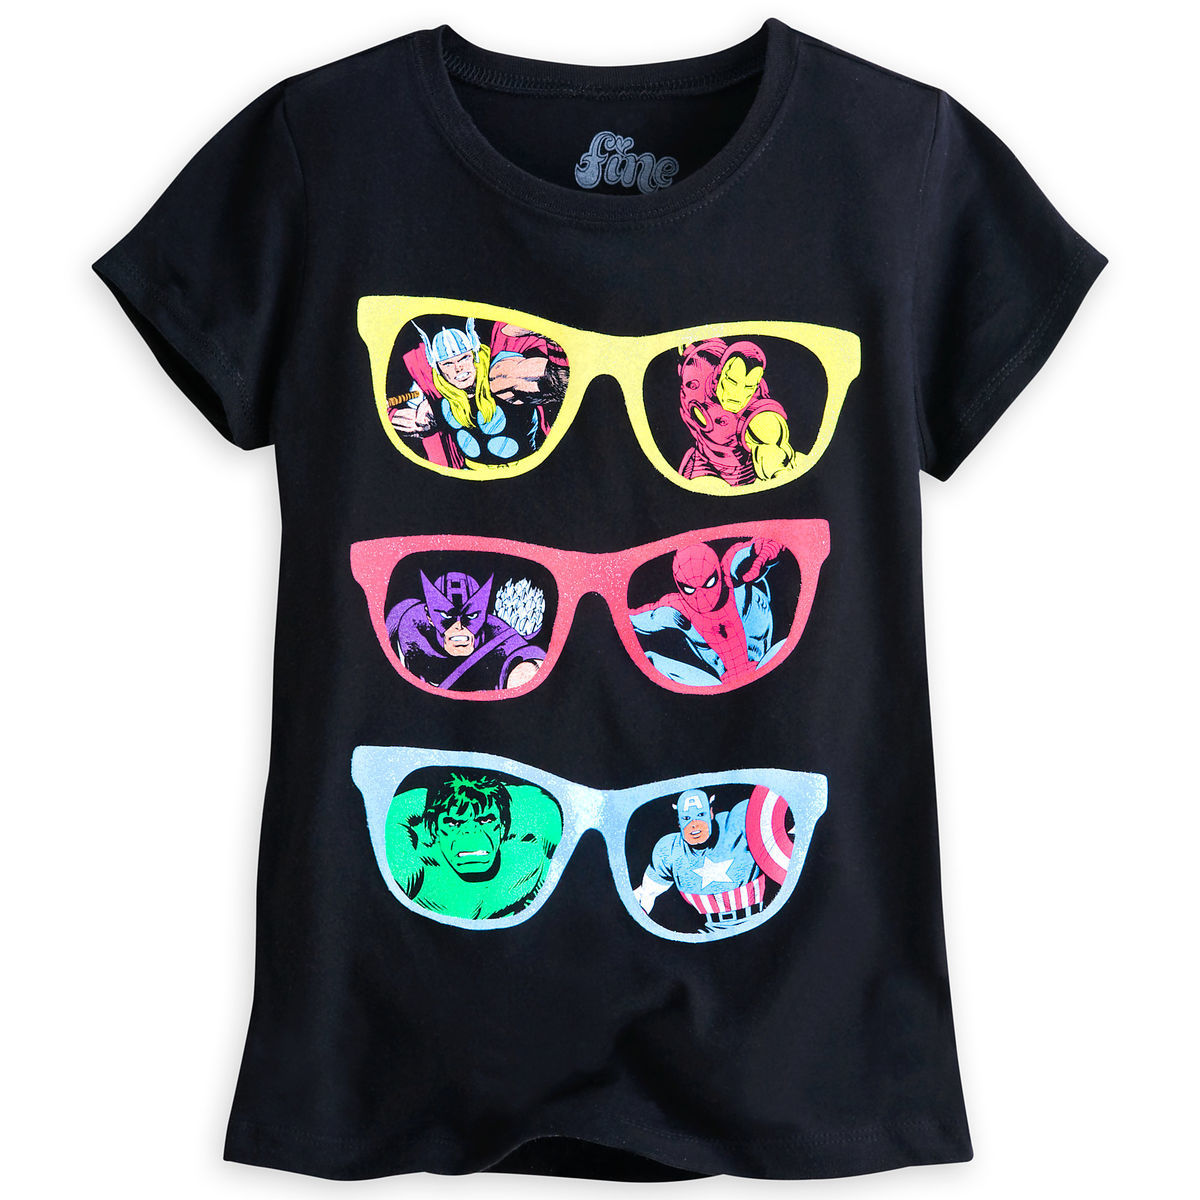 8840c9008eb Product Image of Marvel Comics Super Heroes Tee for Girls by Mighty Fine   1